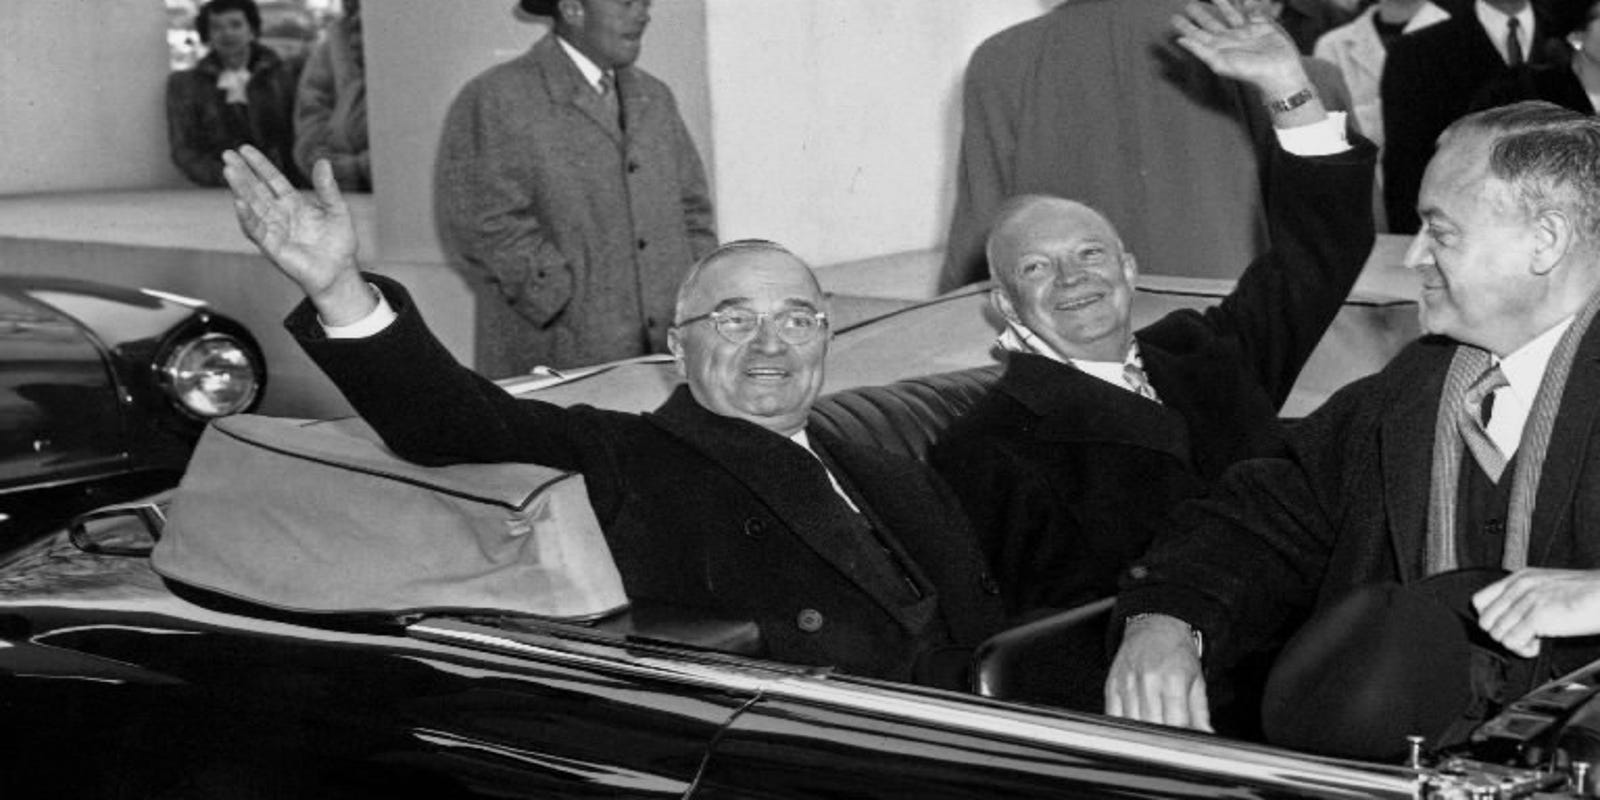 Harry S. Truman's grandson: The messy, impolite history of presidential transitions